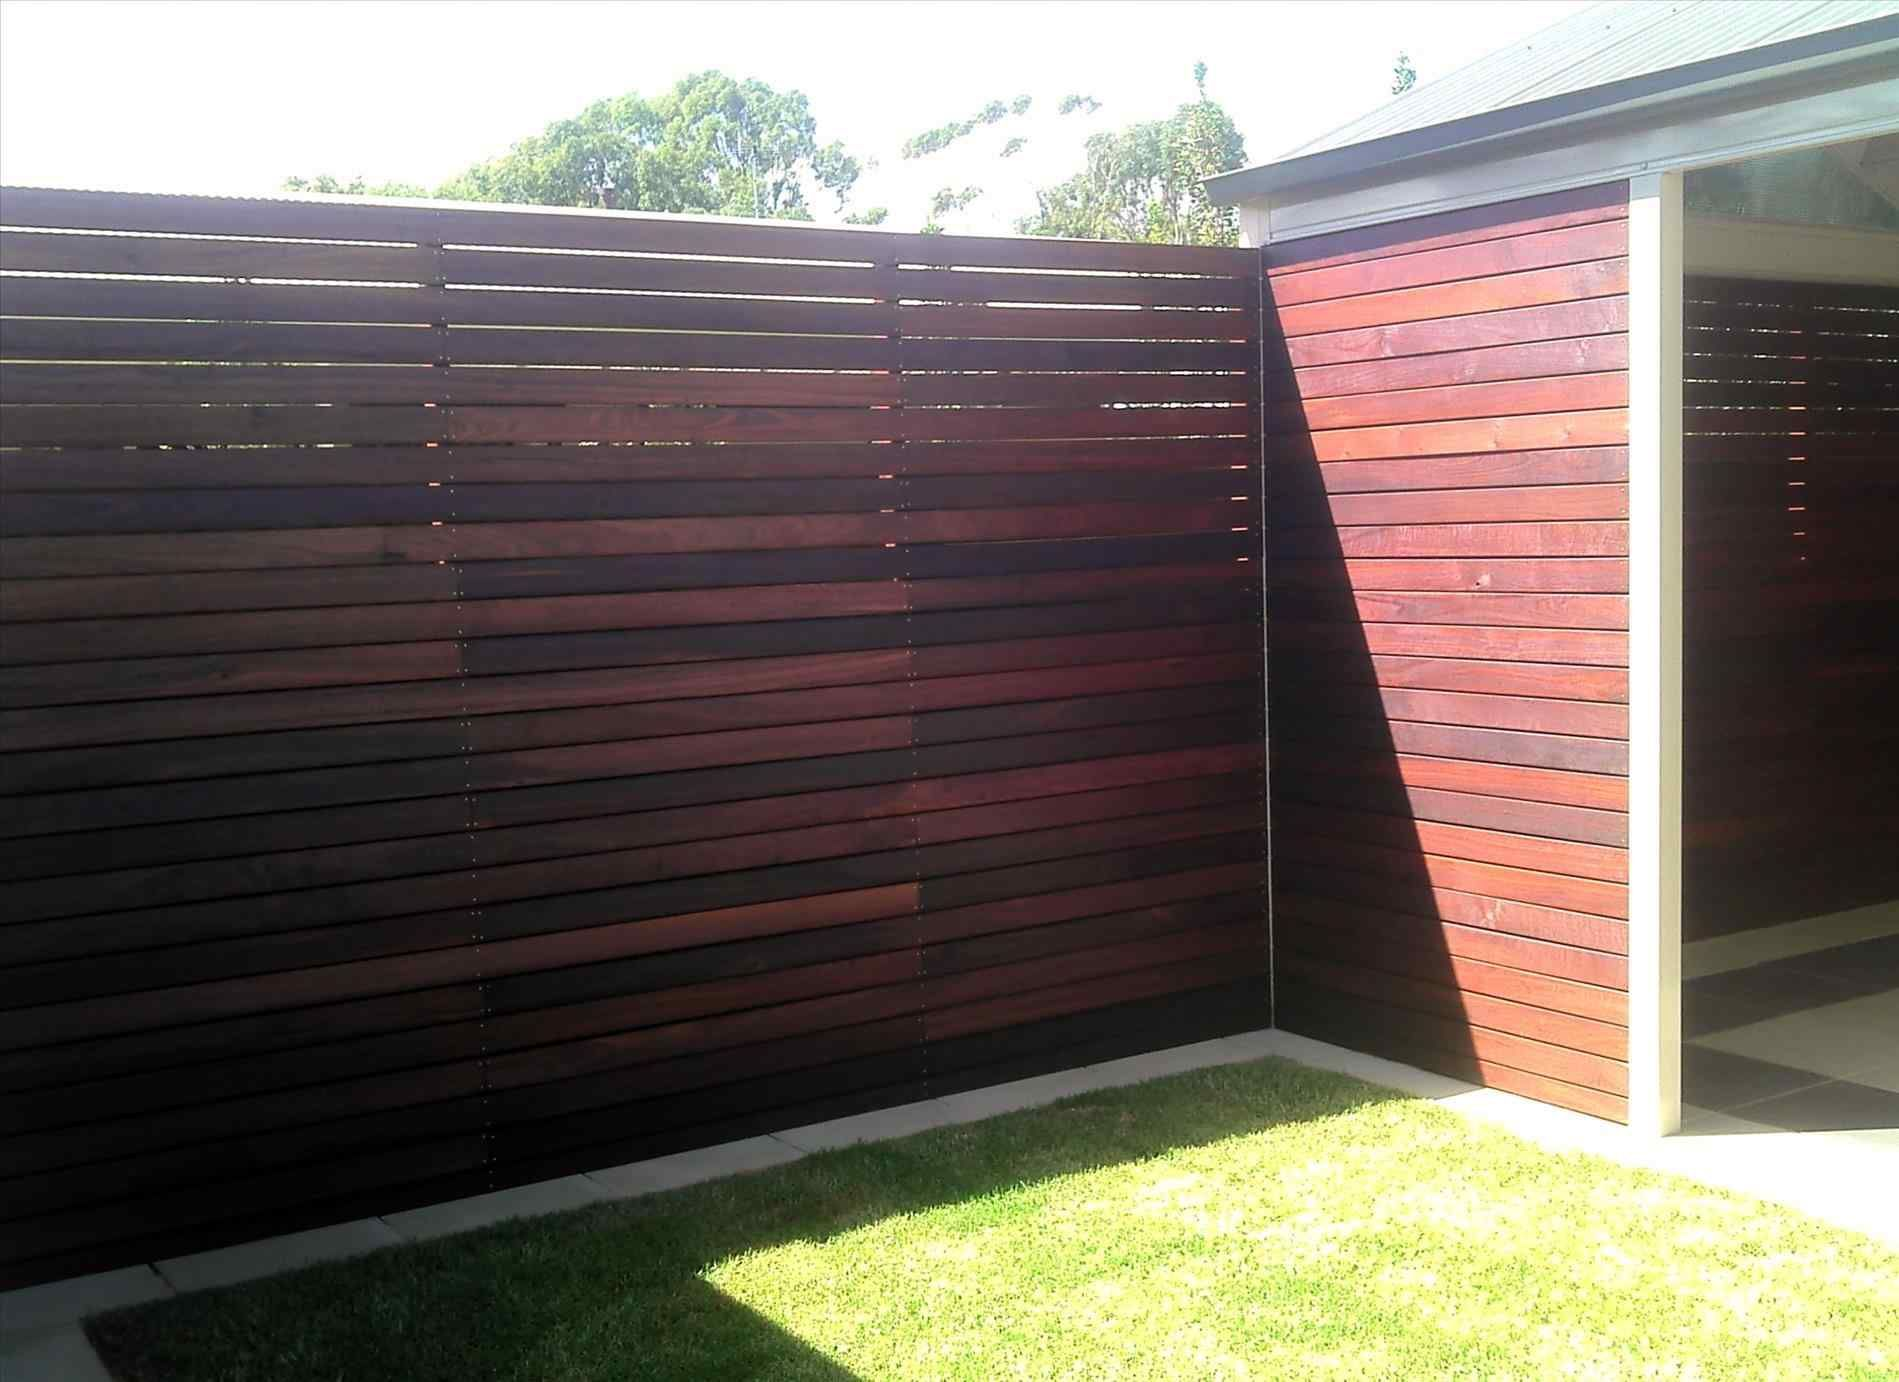 Phenomenon 16 Incredible Patio Divider Walls For Your Home  Https://breakpr.com